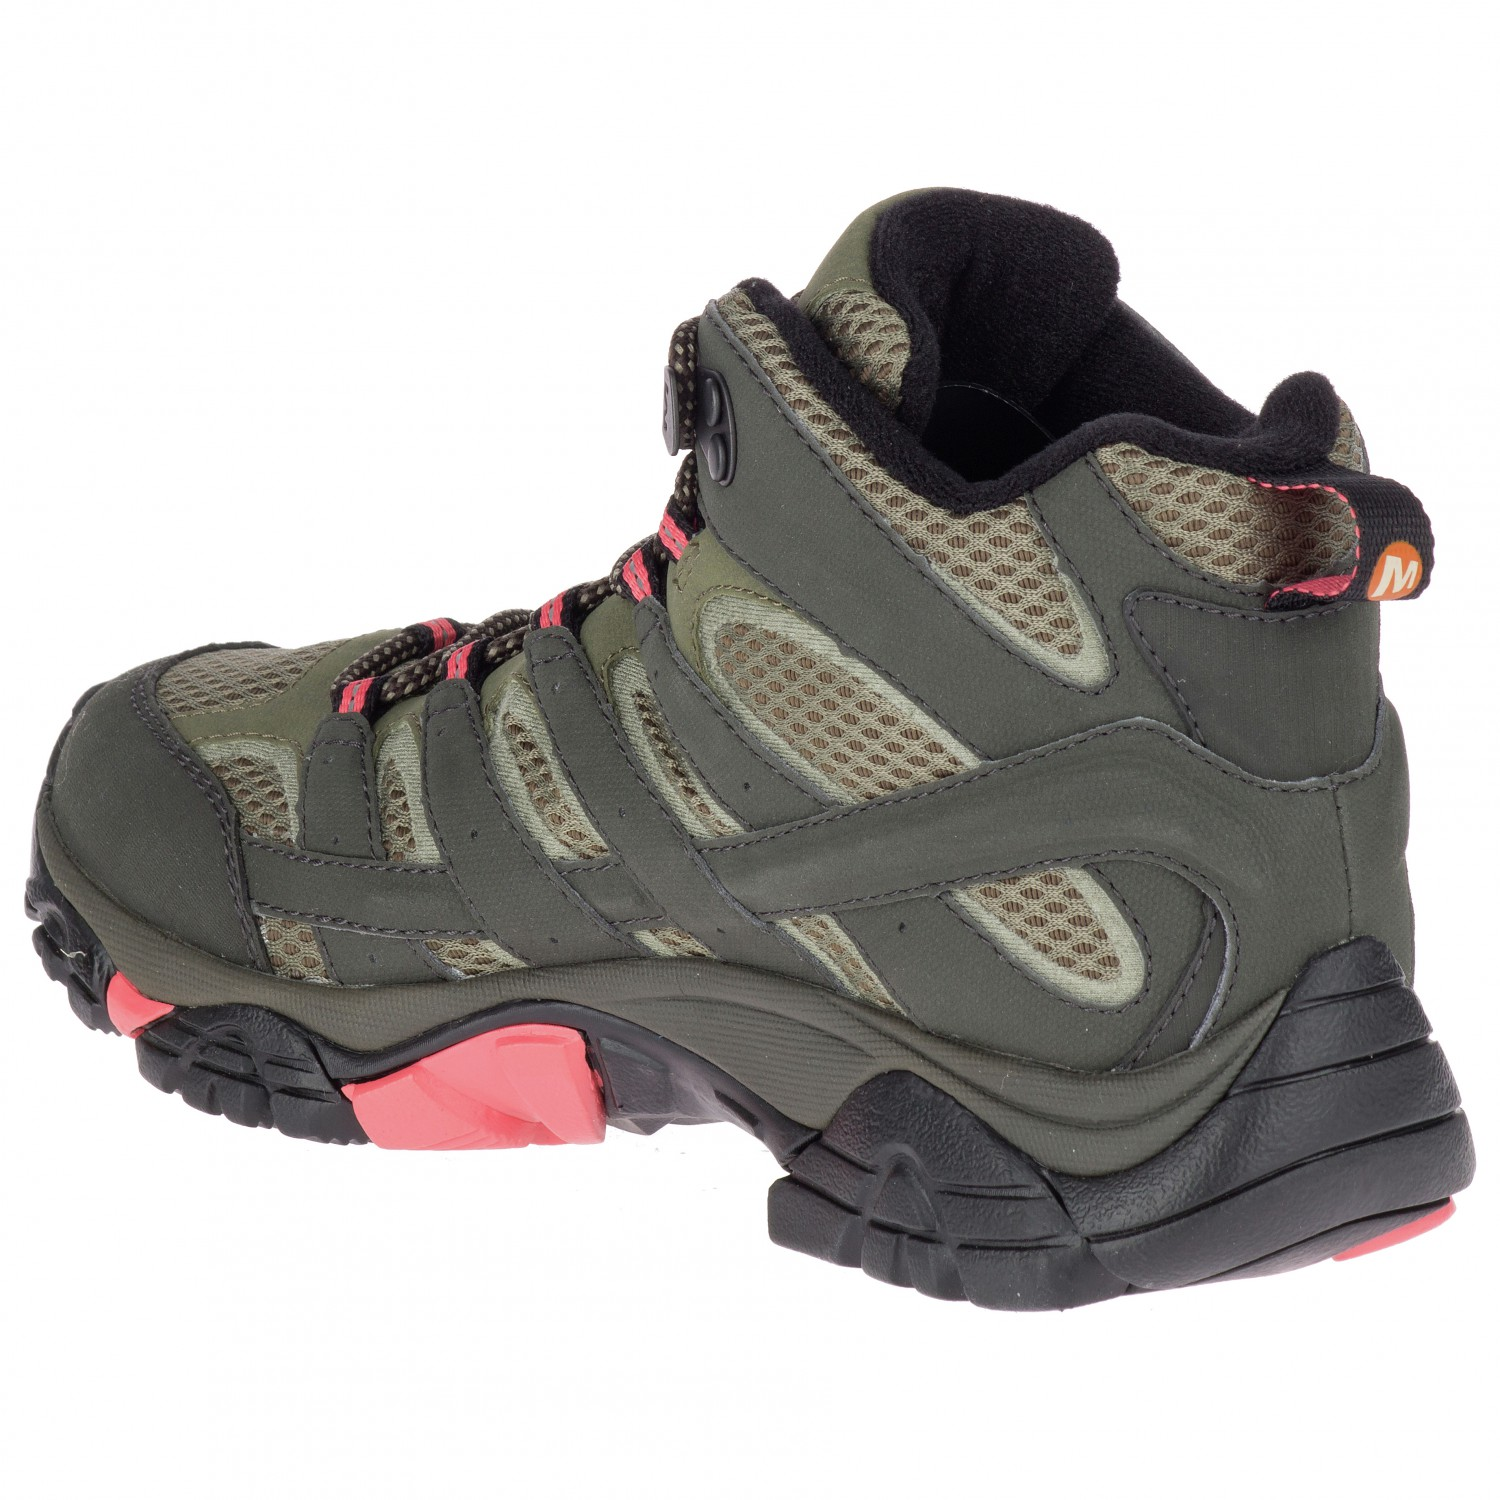 2bf7e9dd6e4ab Merrell Moab 2 Mid GTX - Walking Boots Women's | Free UK Delivery ...